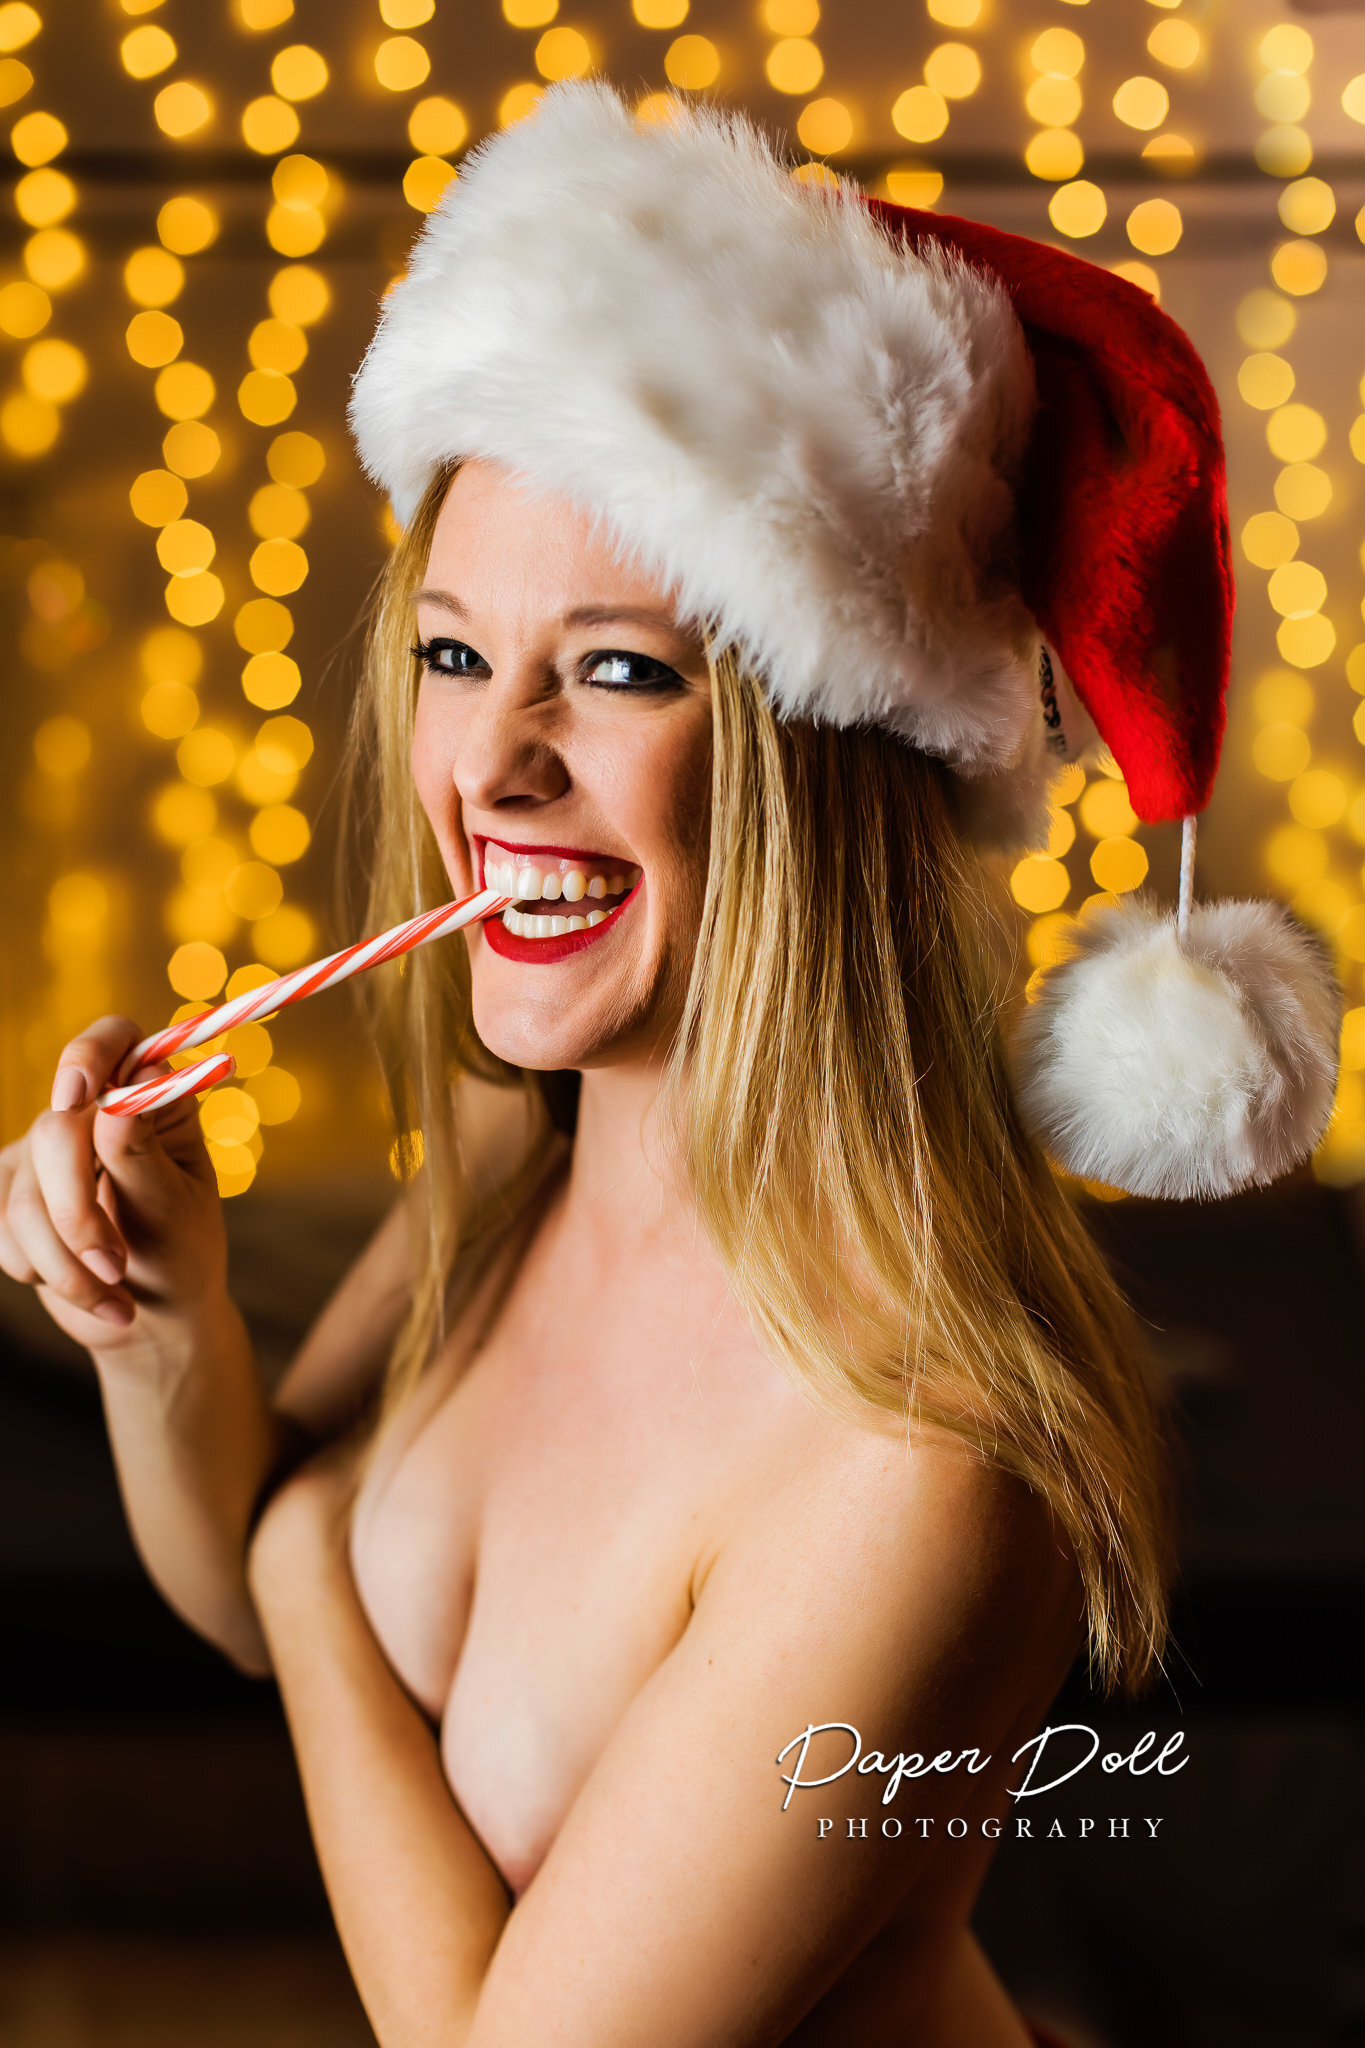 Happy topless woman wearing a Santa hat and eating a candy cane